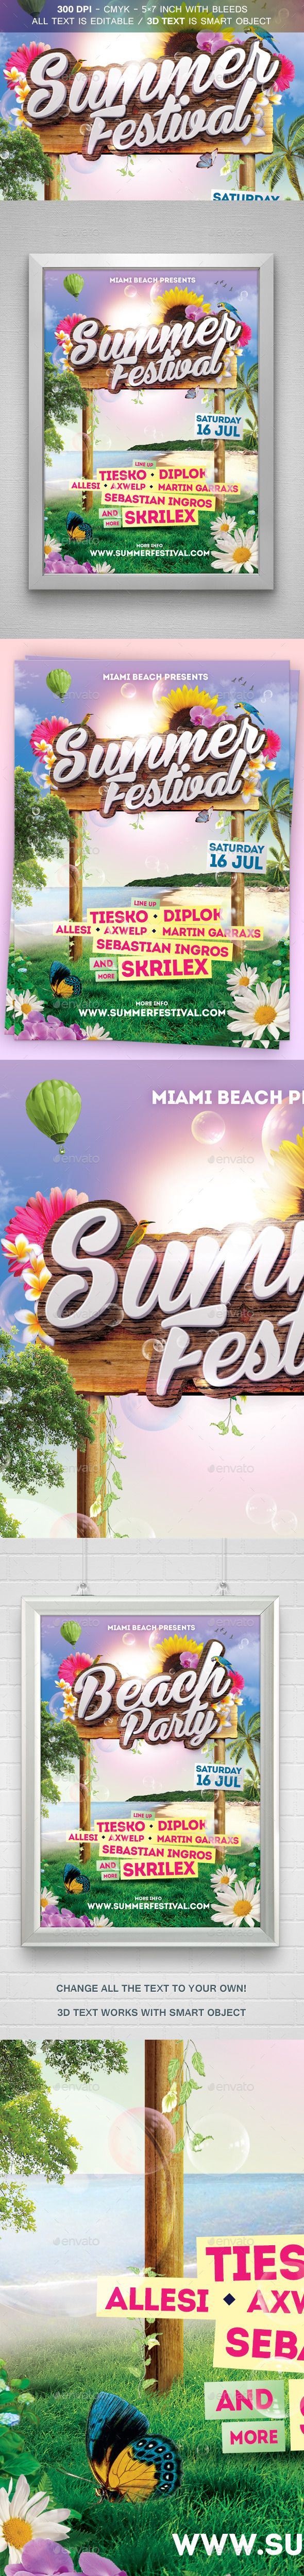 Summer Festival Flyer Template #design #print Download: http://graphicriver.net/item/summer-festival-flyer/11975145?ref=ksioks